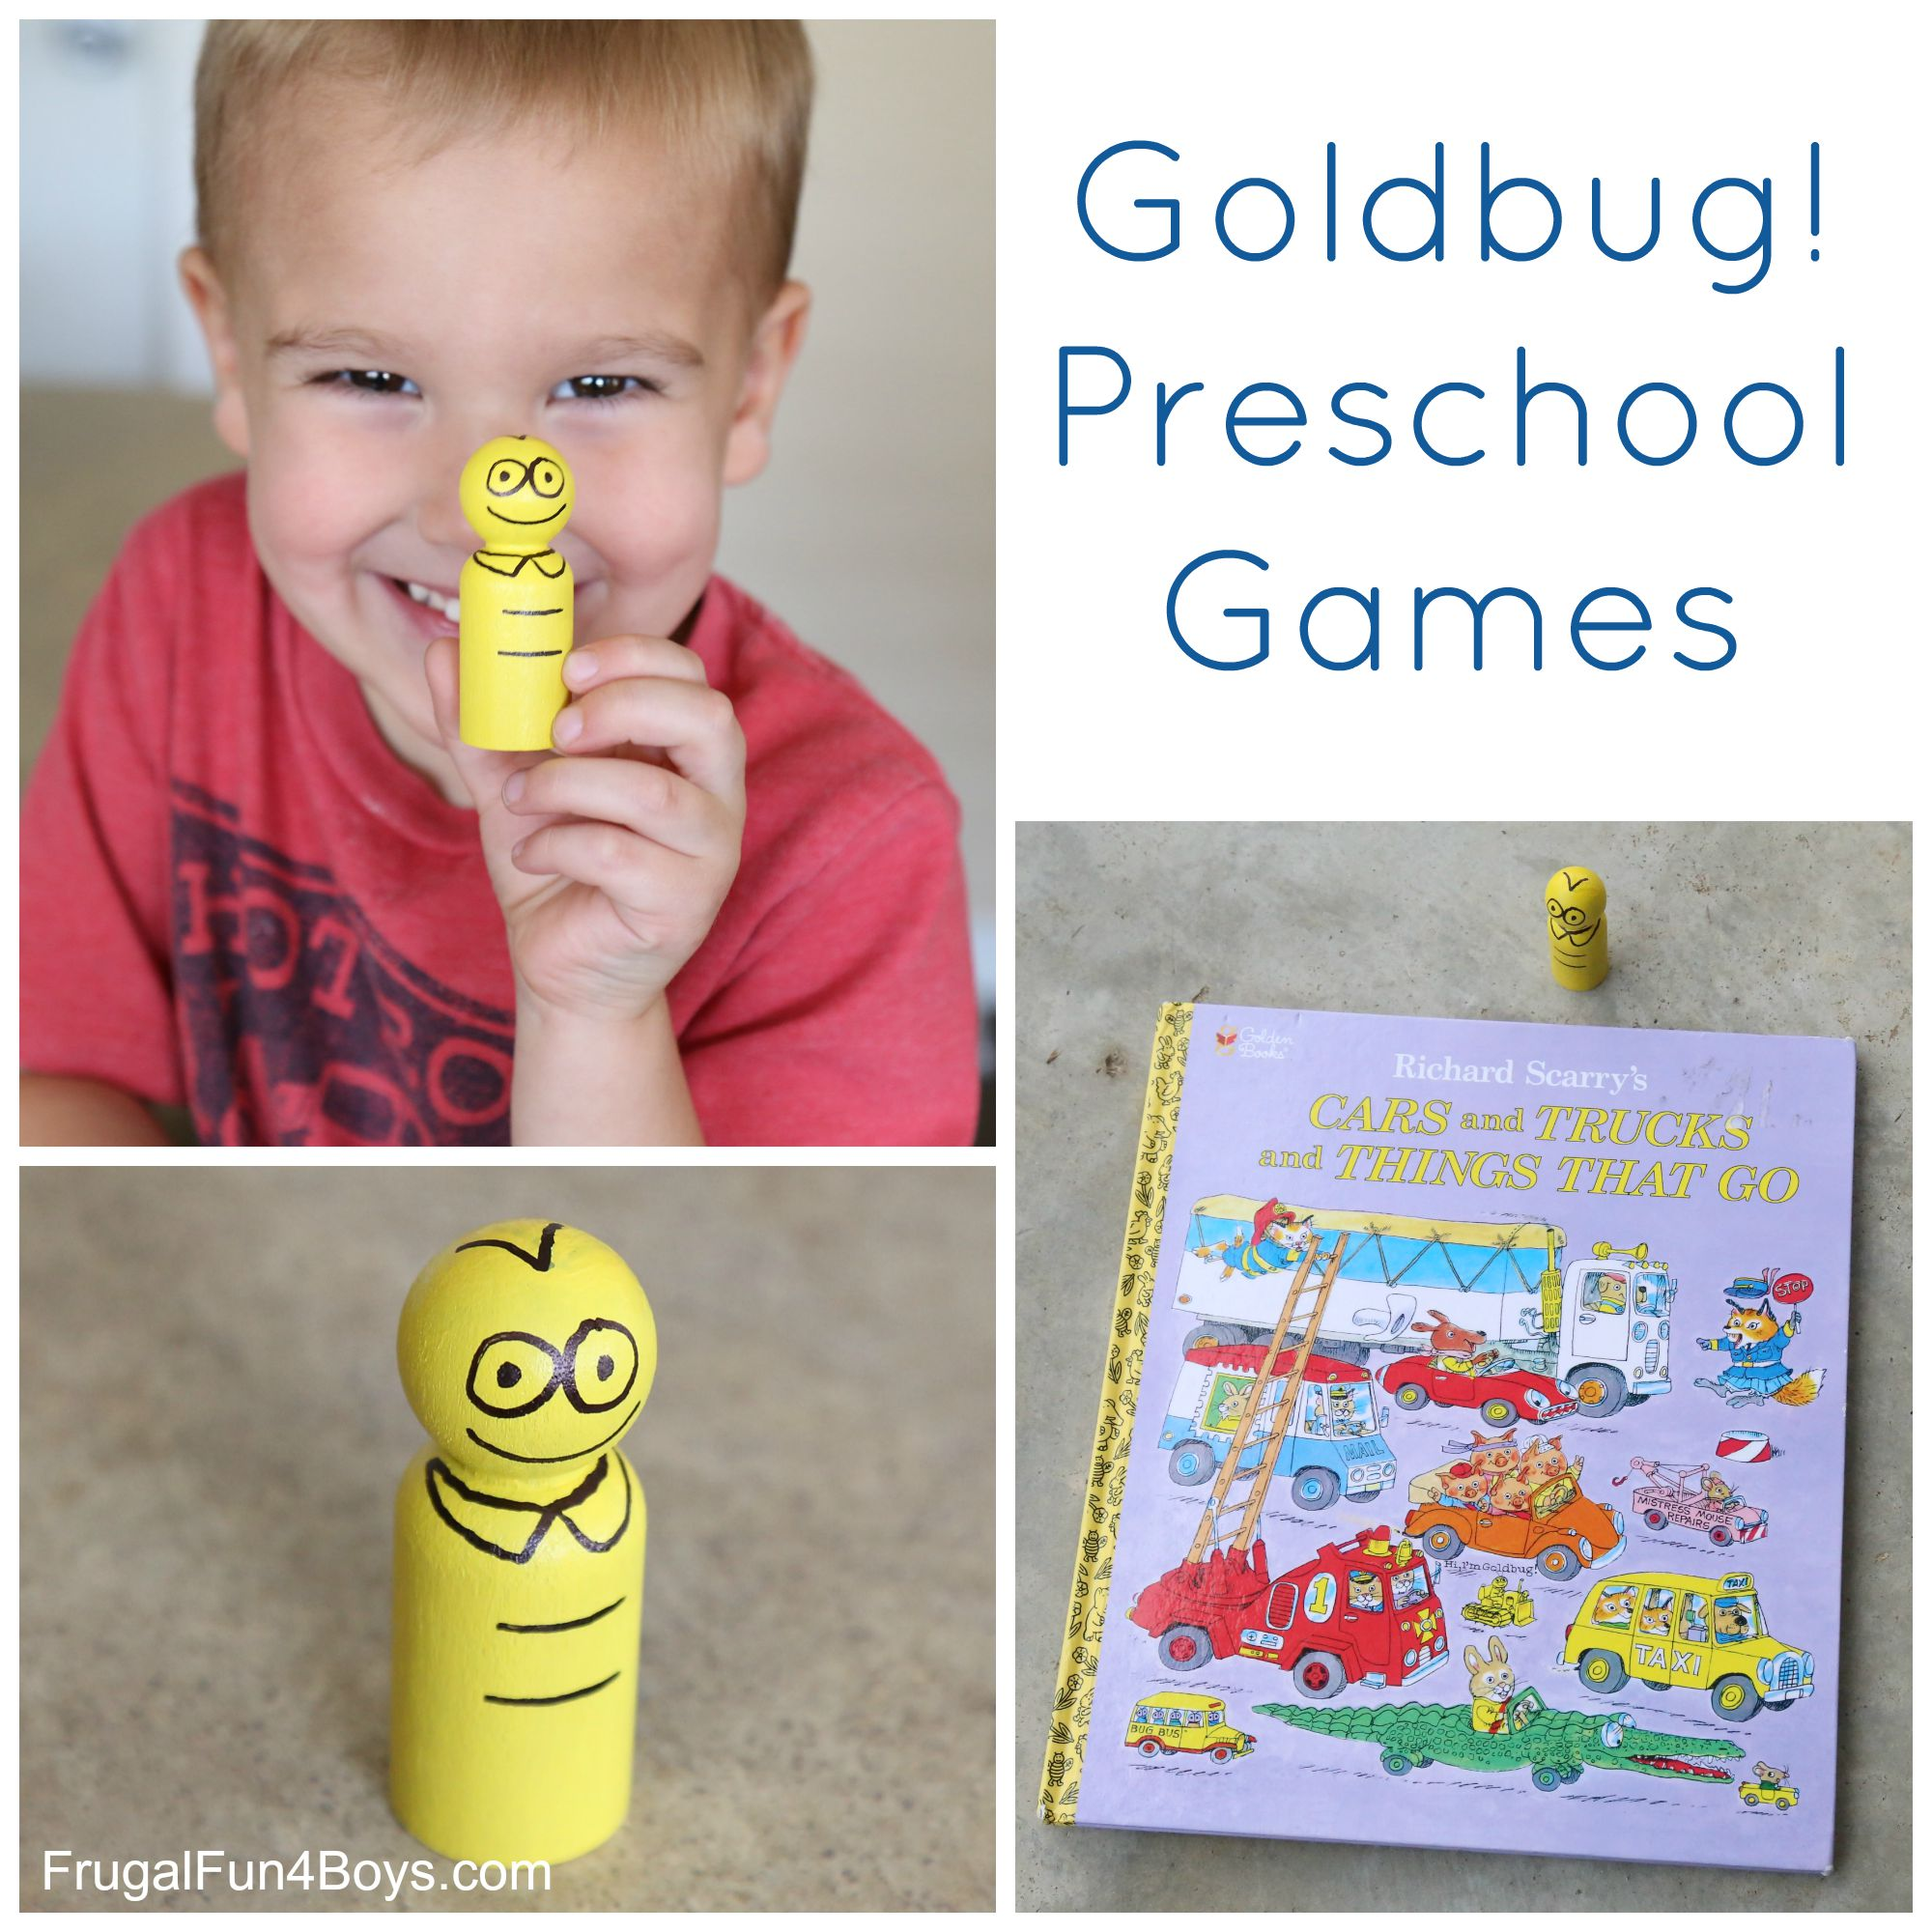 Goldbug Preschool Games to go with Richard Scarry's Cars and Trucks and Things that Go